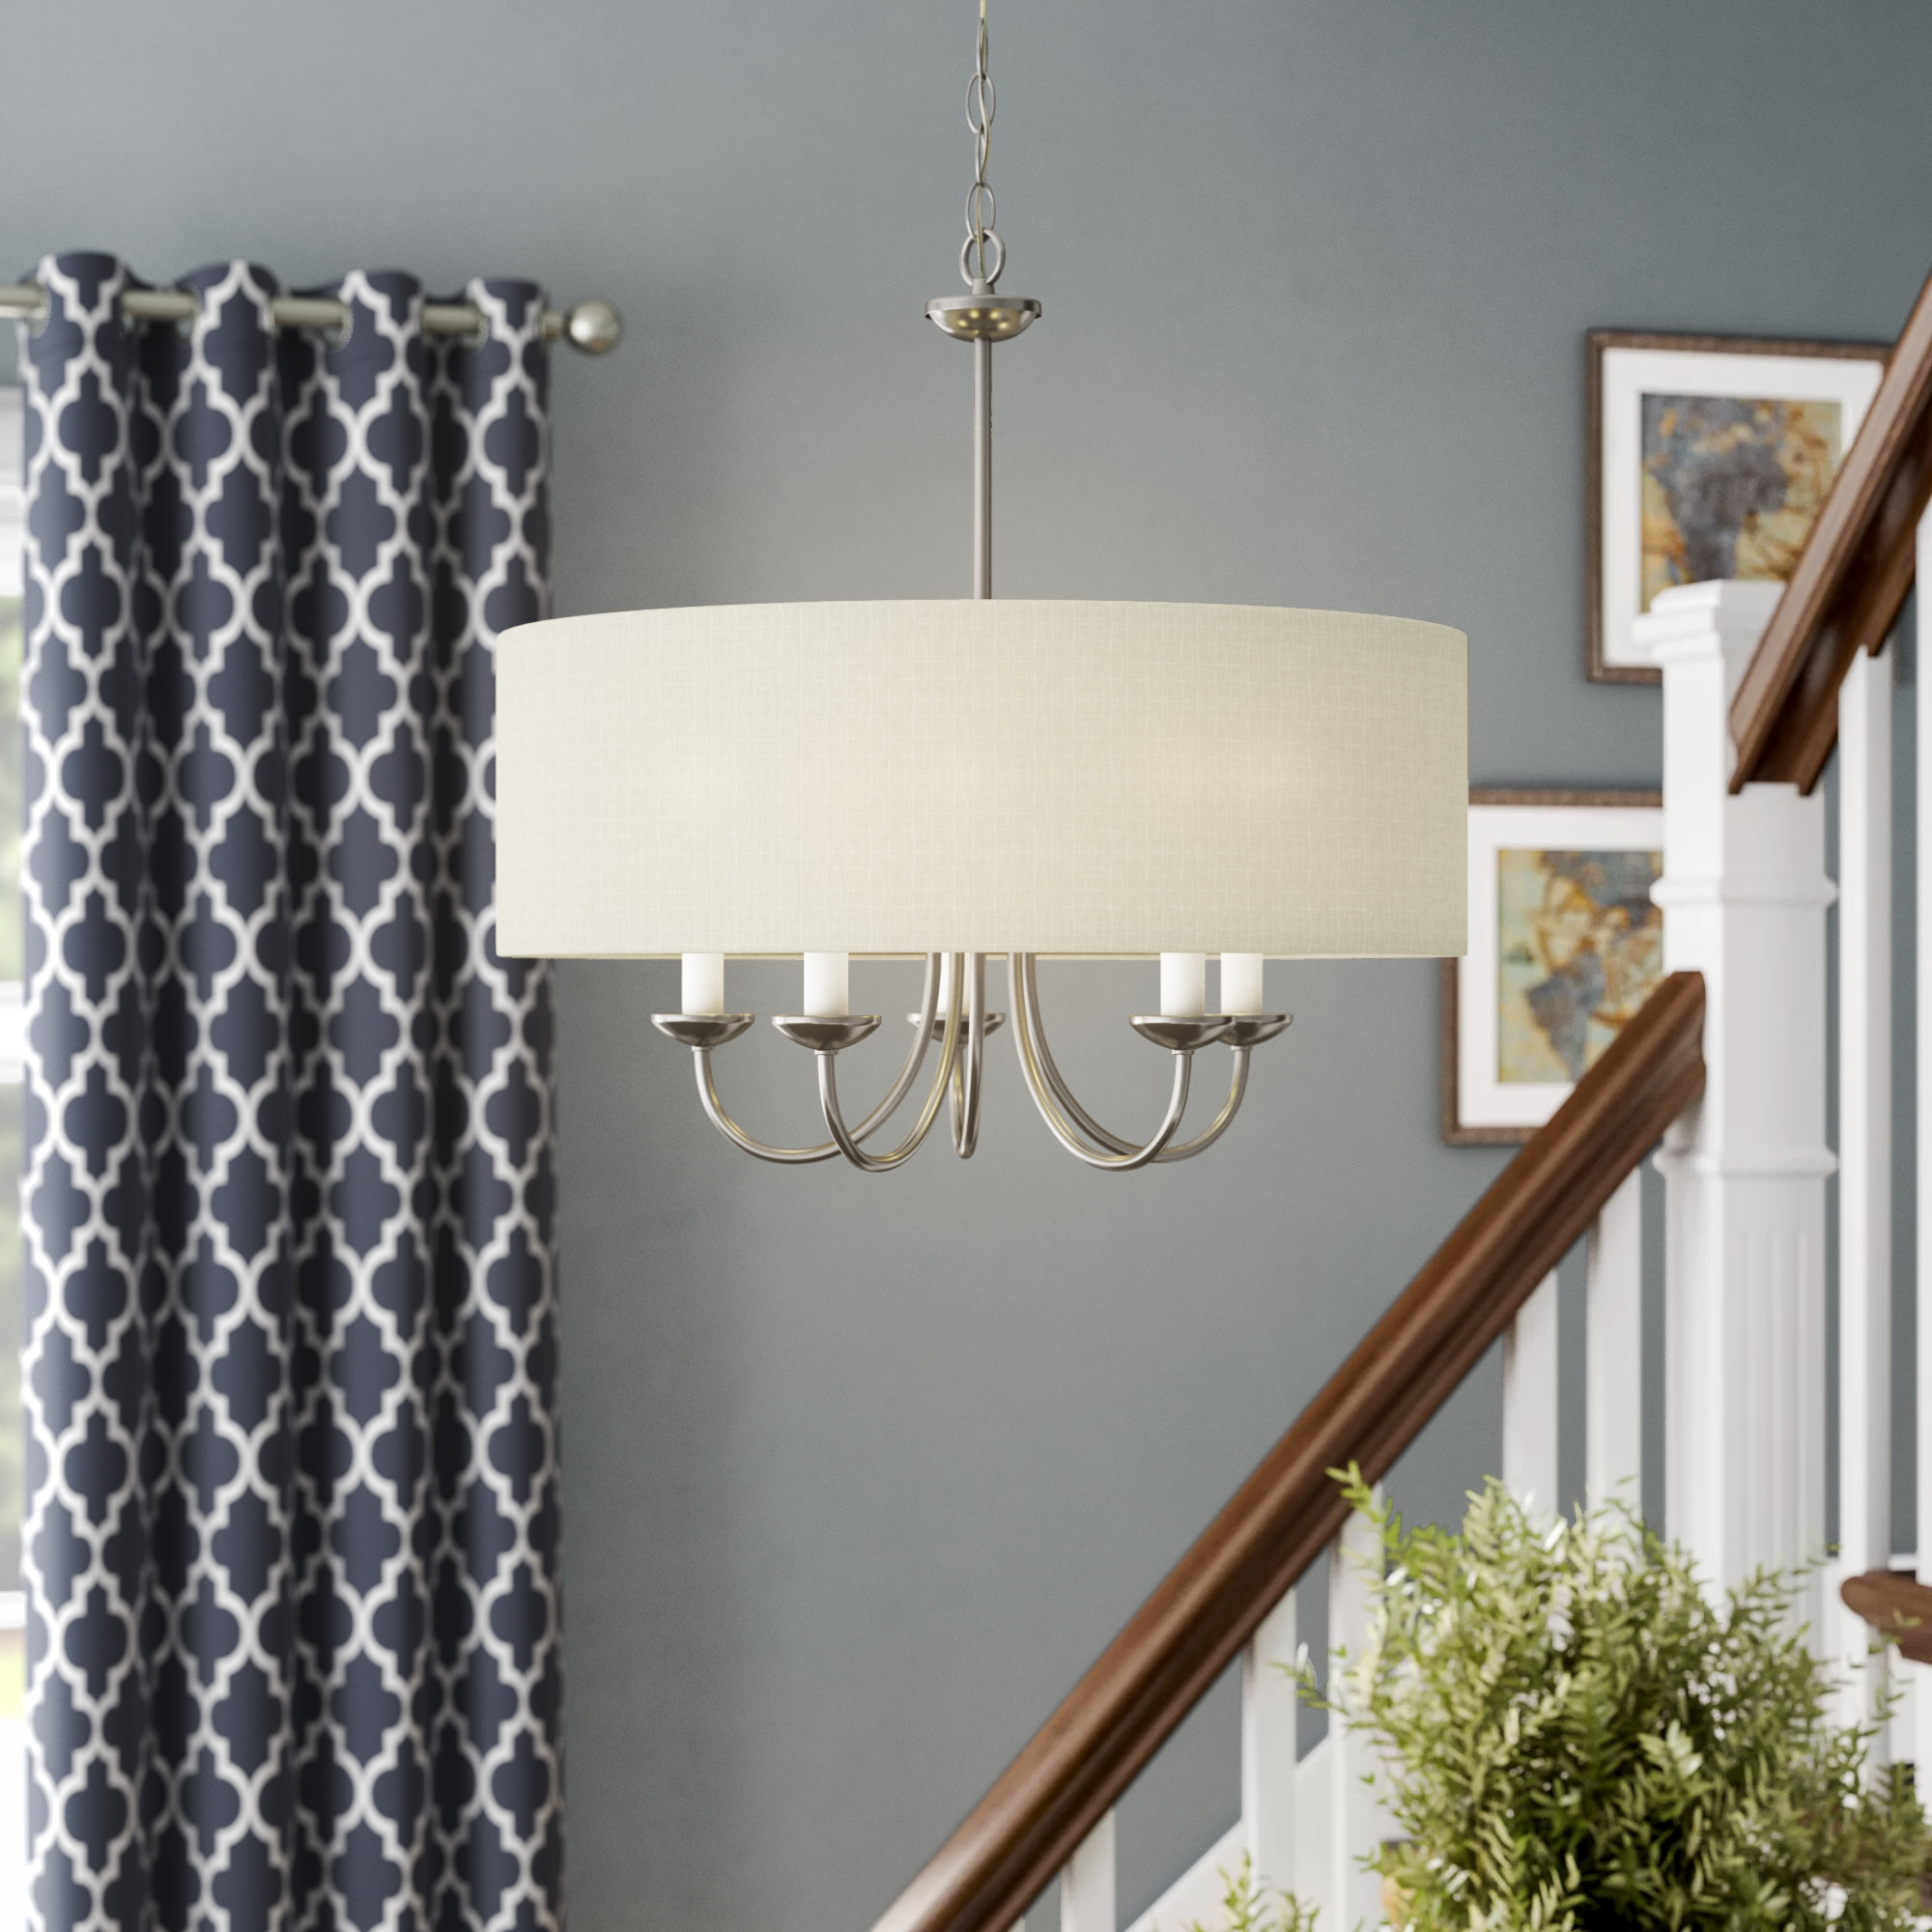 Widely Used Andover Mills Burton 5 Light Drum Chandelier For Burton 5 Light Drum Chandeliers (View 19 of 20)